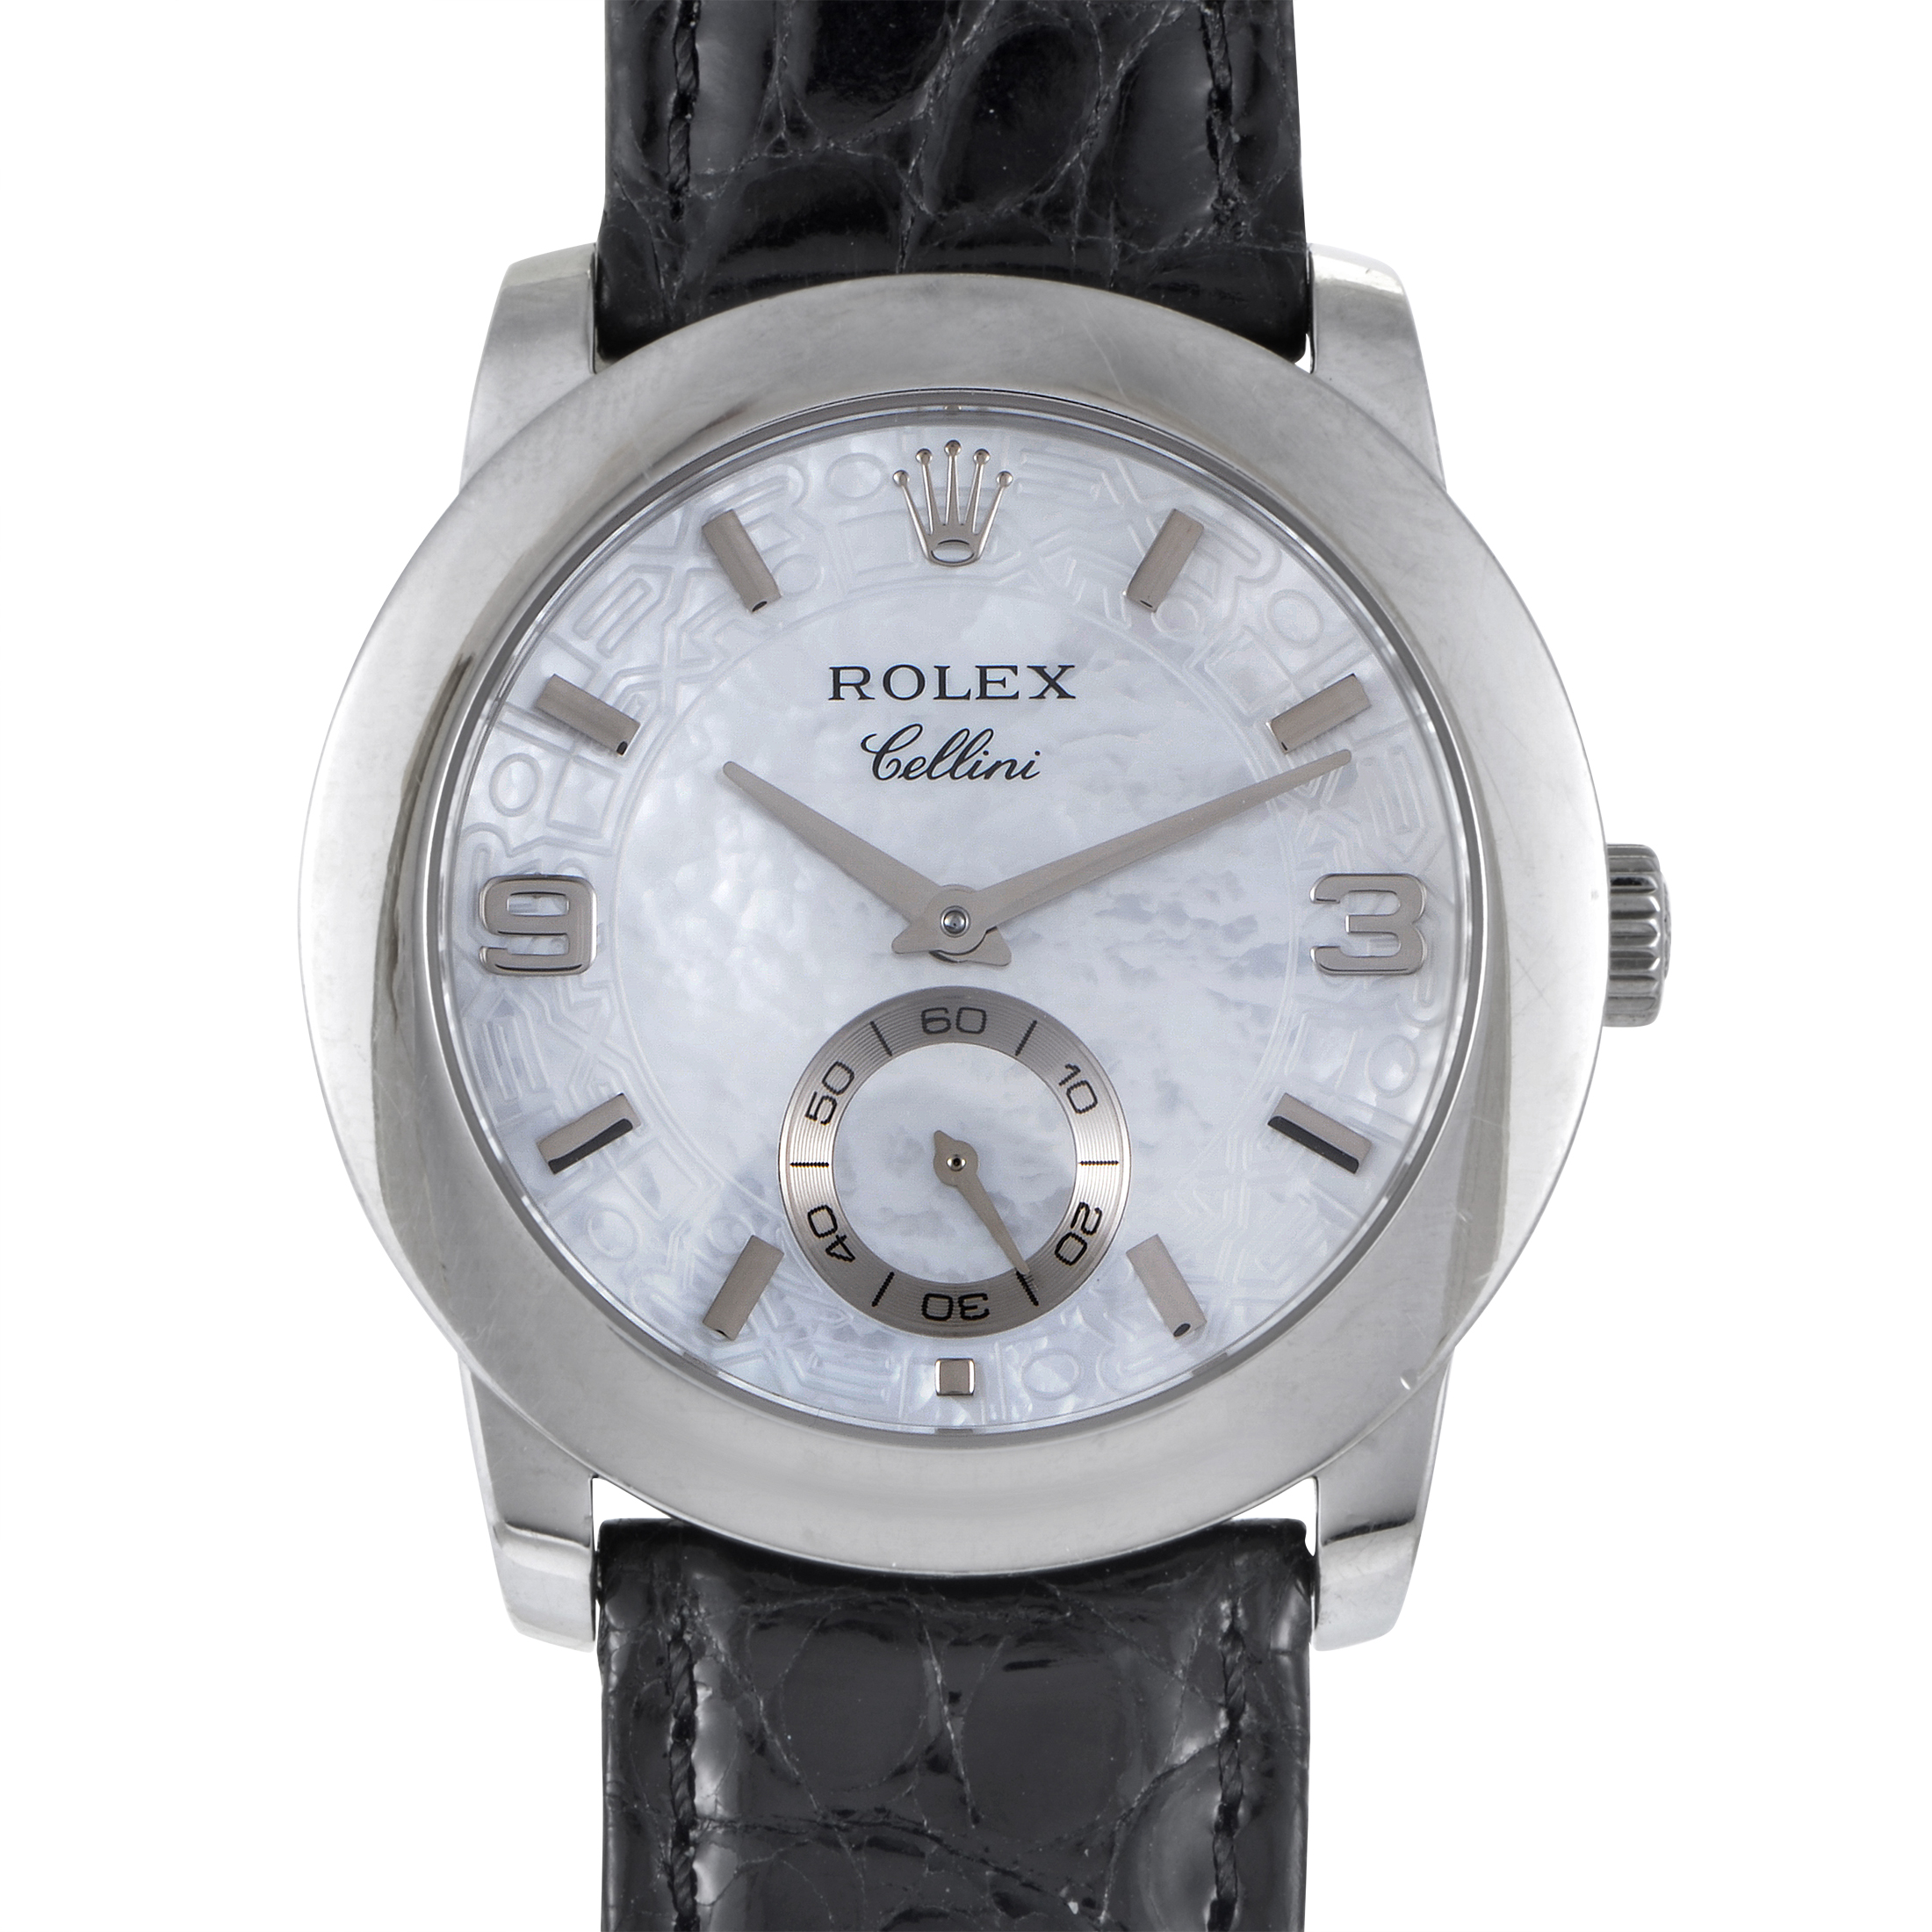 Rolex cellini cellinium mens automatic platinum watch 5240 6 d ebay for Rolex cellini